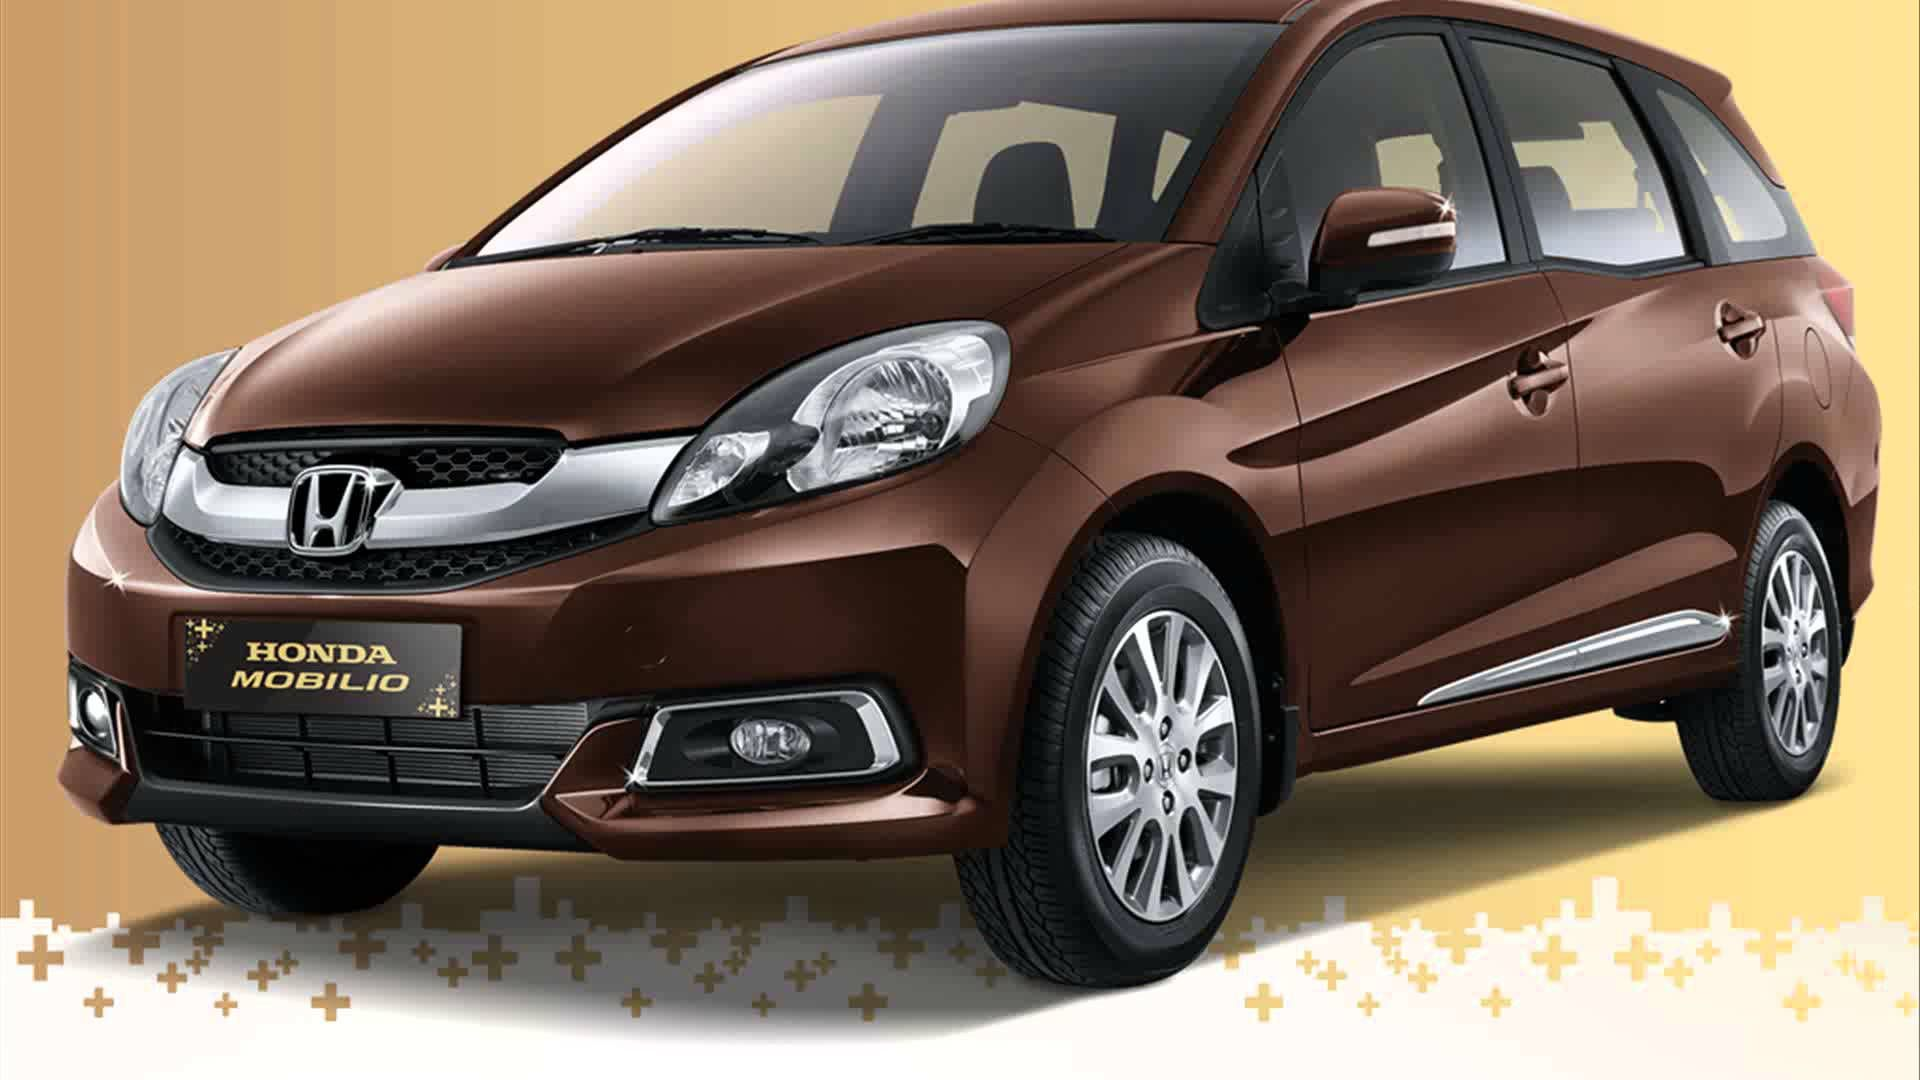 2015 Honda Mobilio Review Feature Release Date Spec Engine Reviews Price Spec And Pictures Mobil Honda Mobil Baru